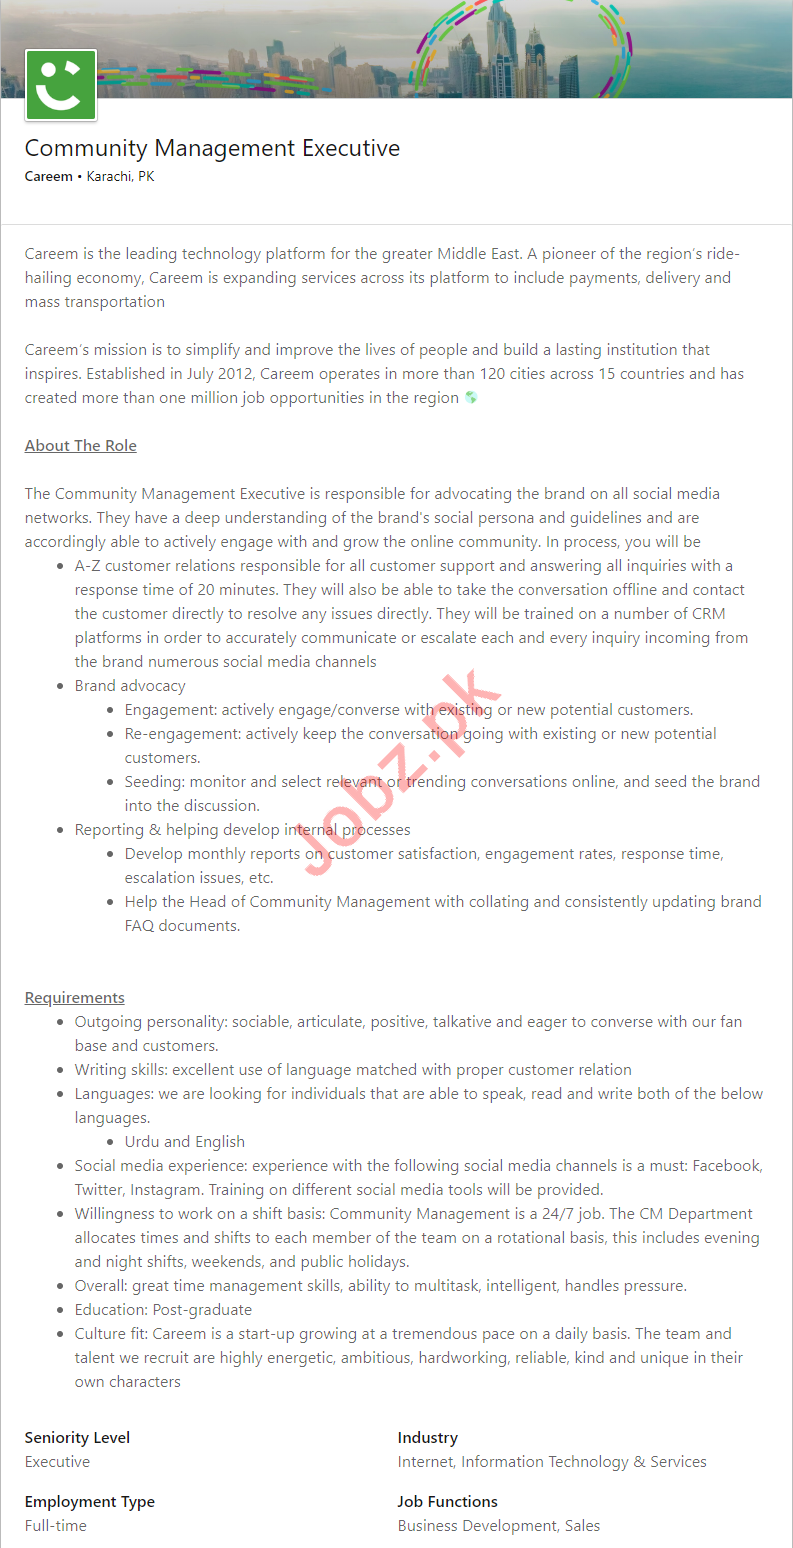 Community Management Executive Jobs in Careem